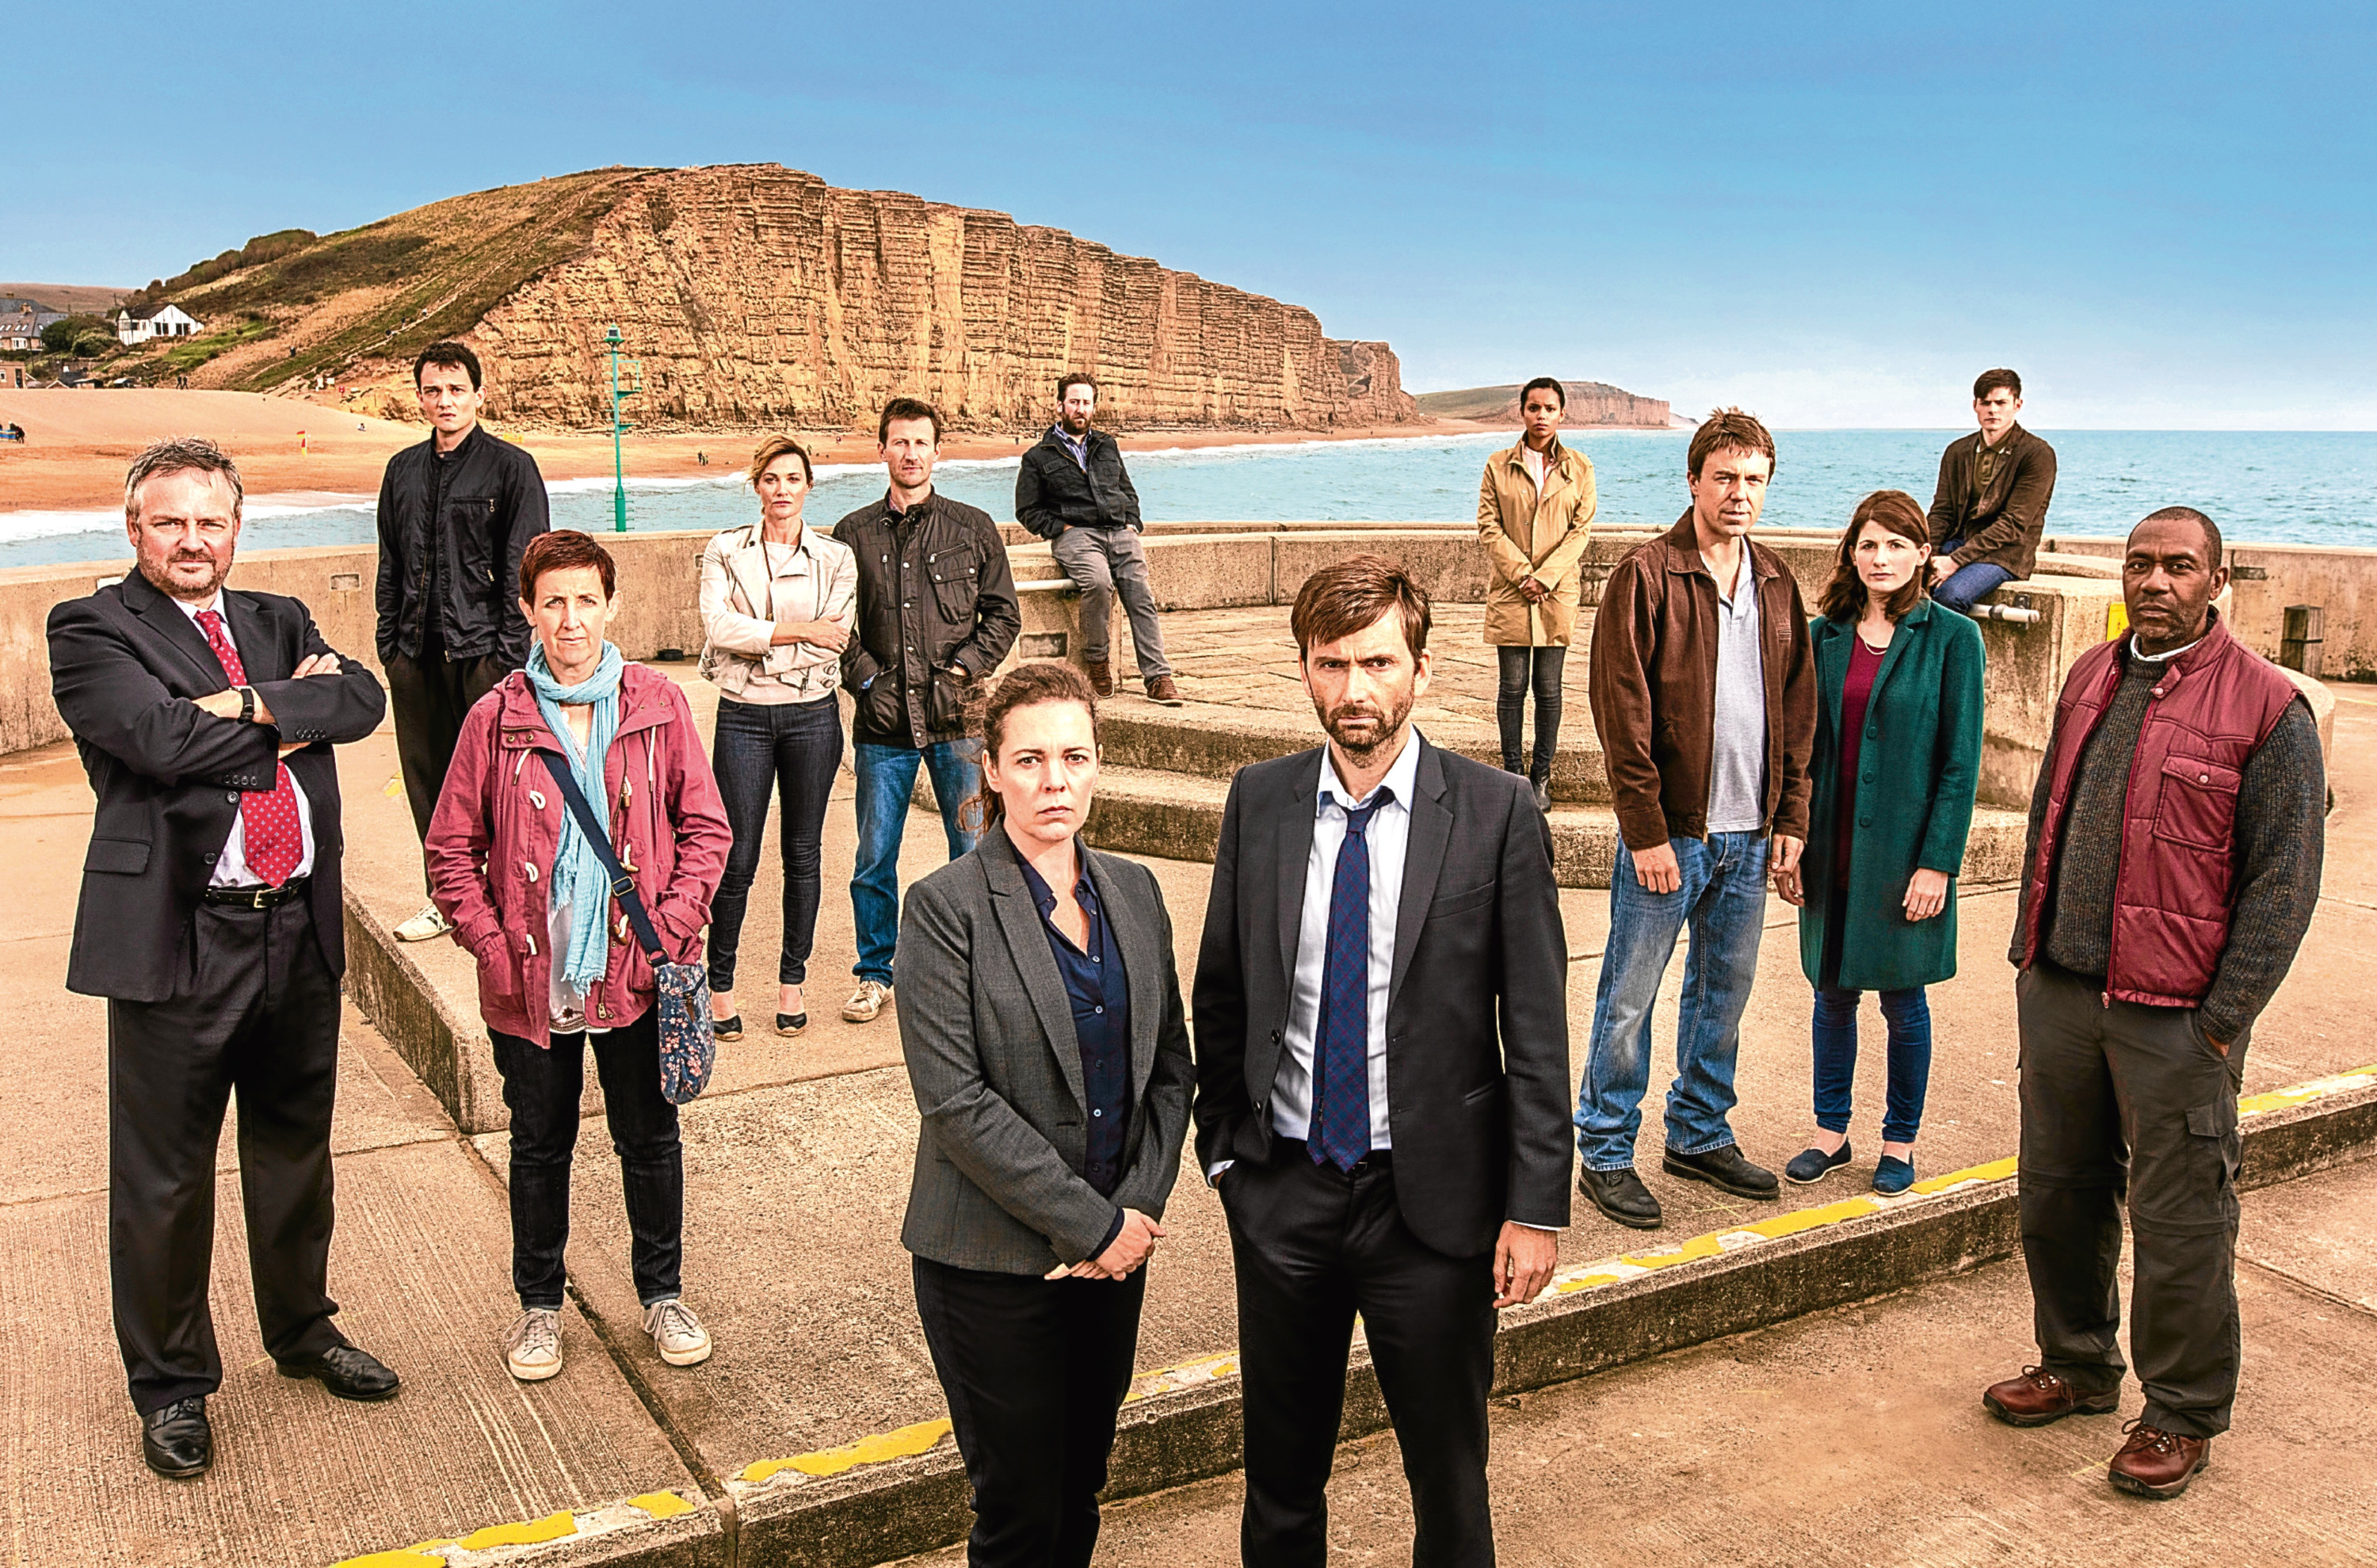 The cast of Broadchurch series 3 (ITV)